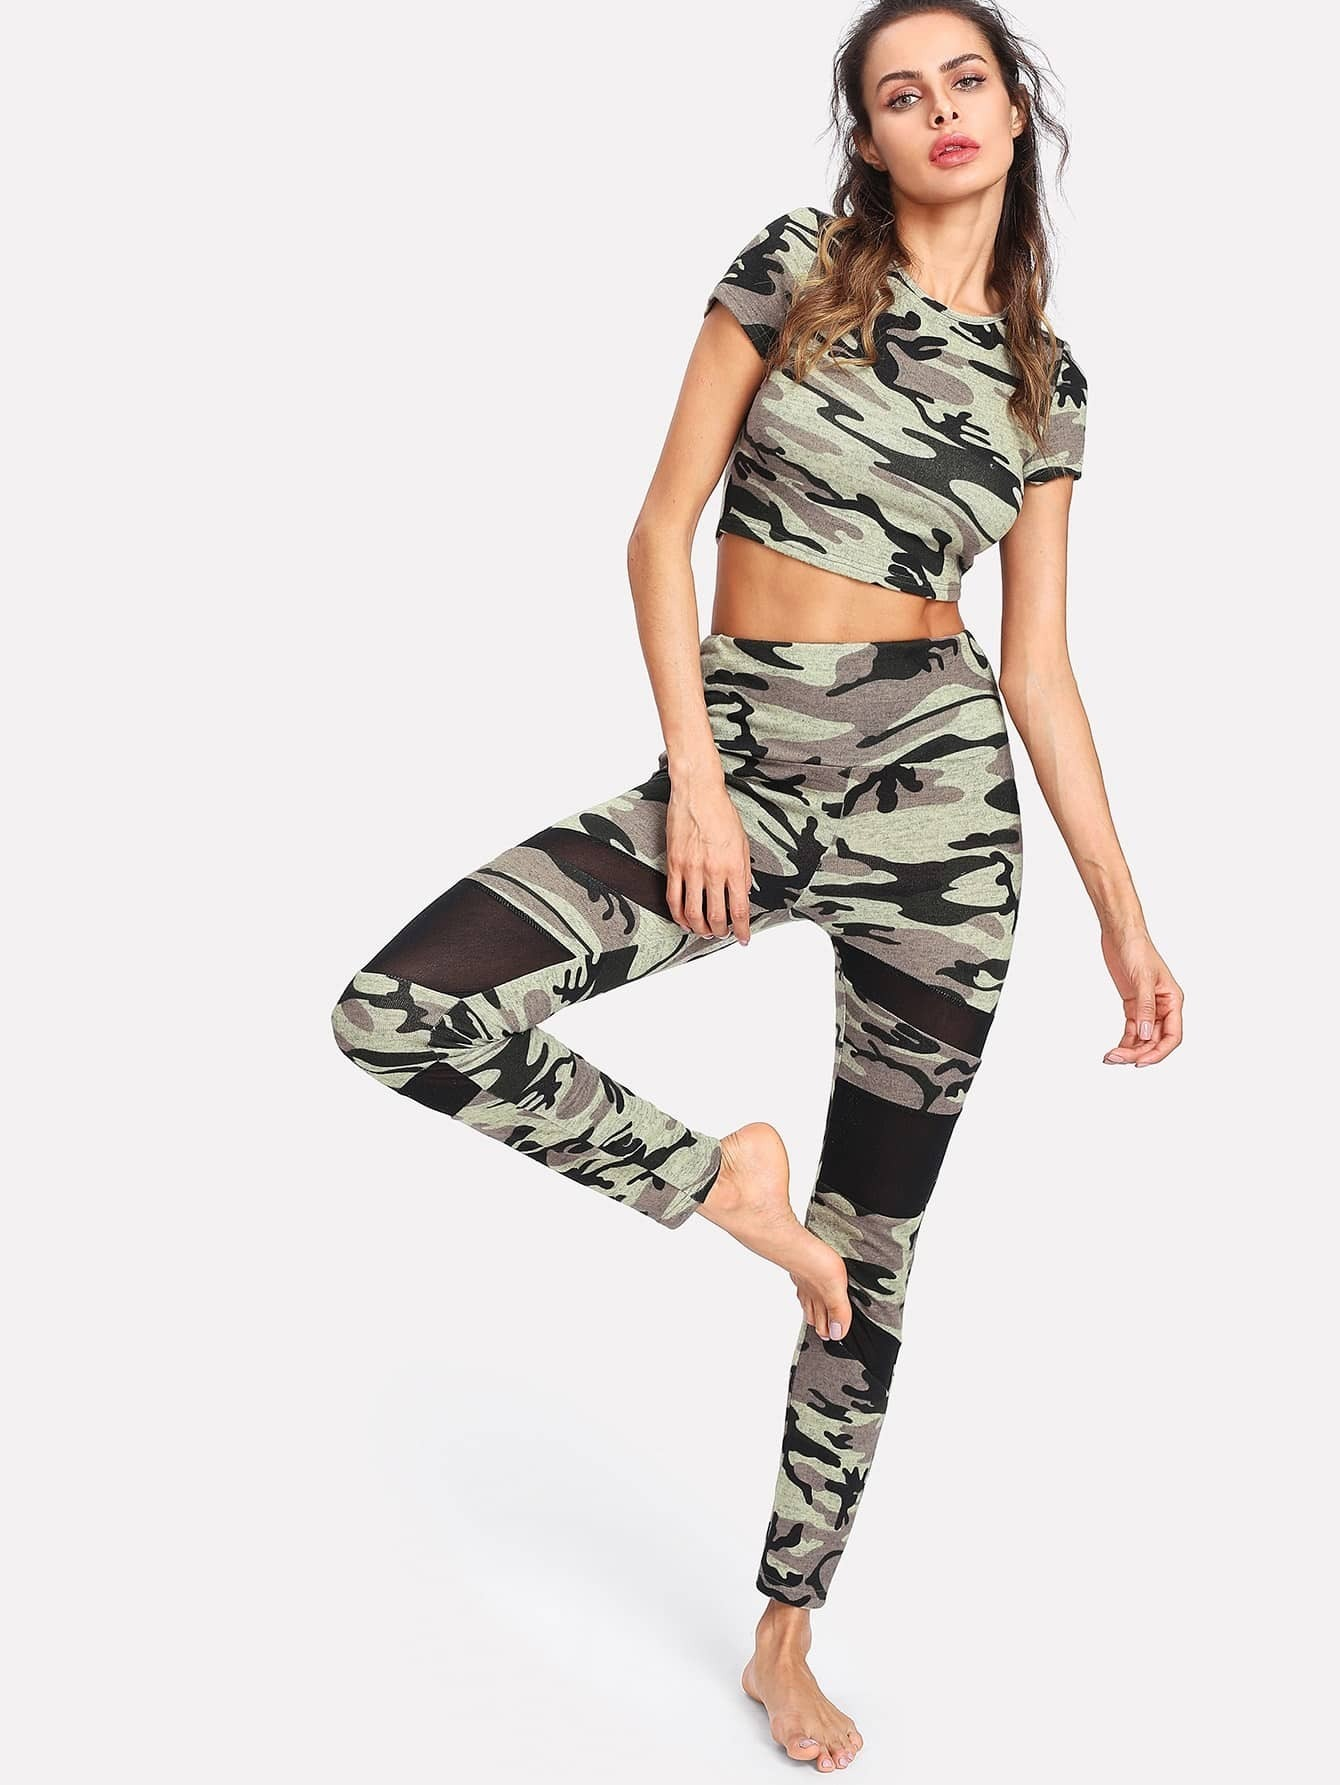 Camo Crop Top & Mesh Insert Leggings Set side panel mesh insert camo leggings